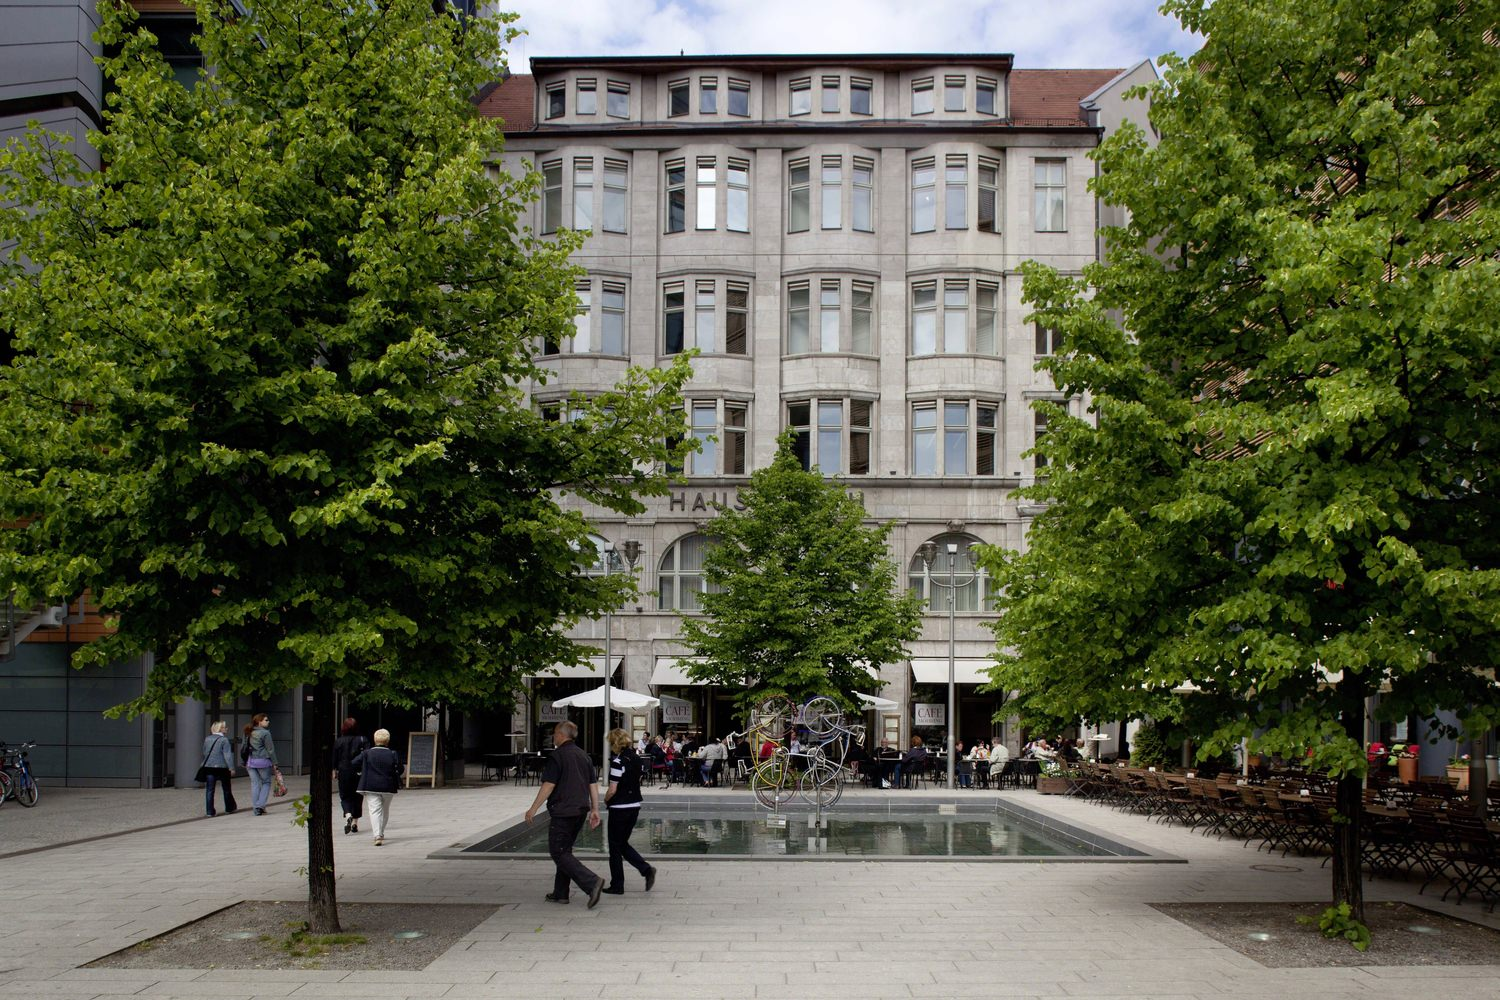 People walking along the outdoor area of a building that has a fountain and rows of trees.